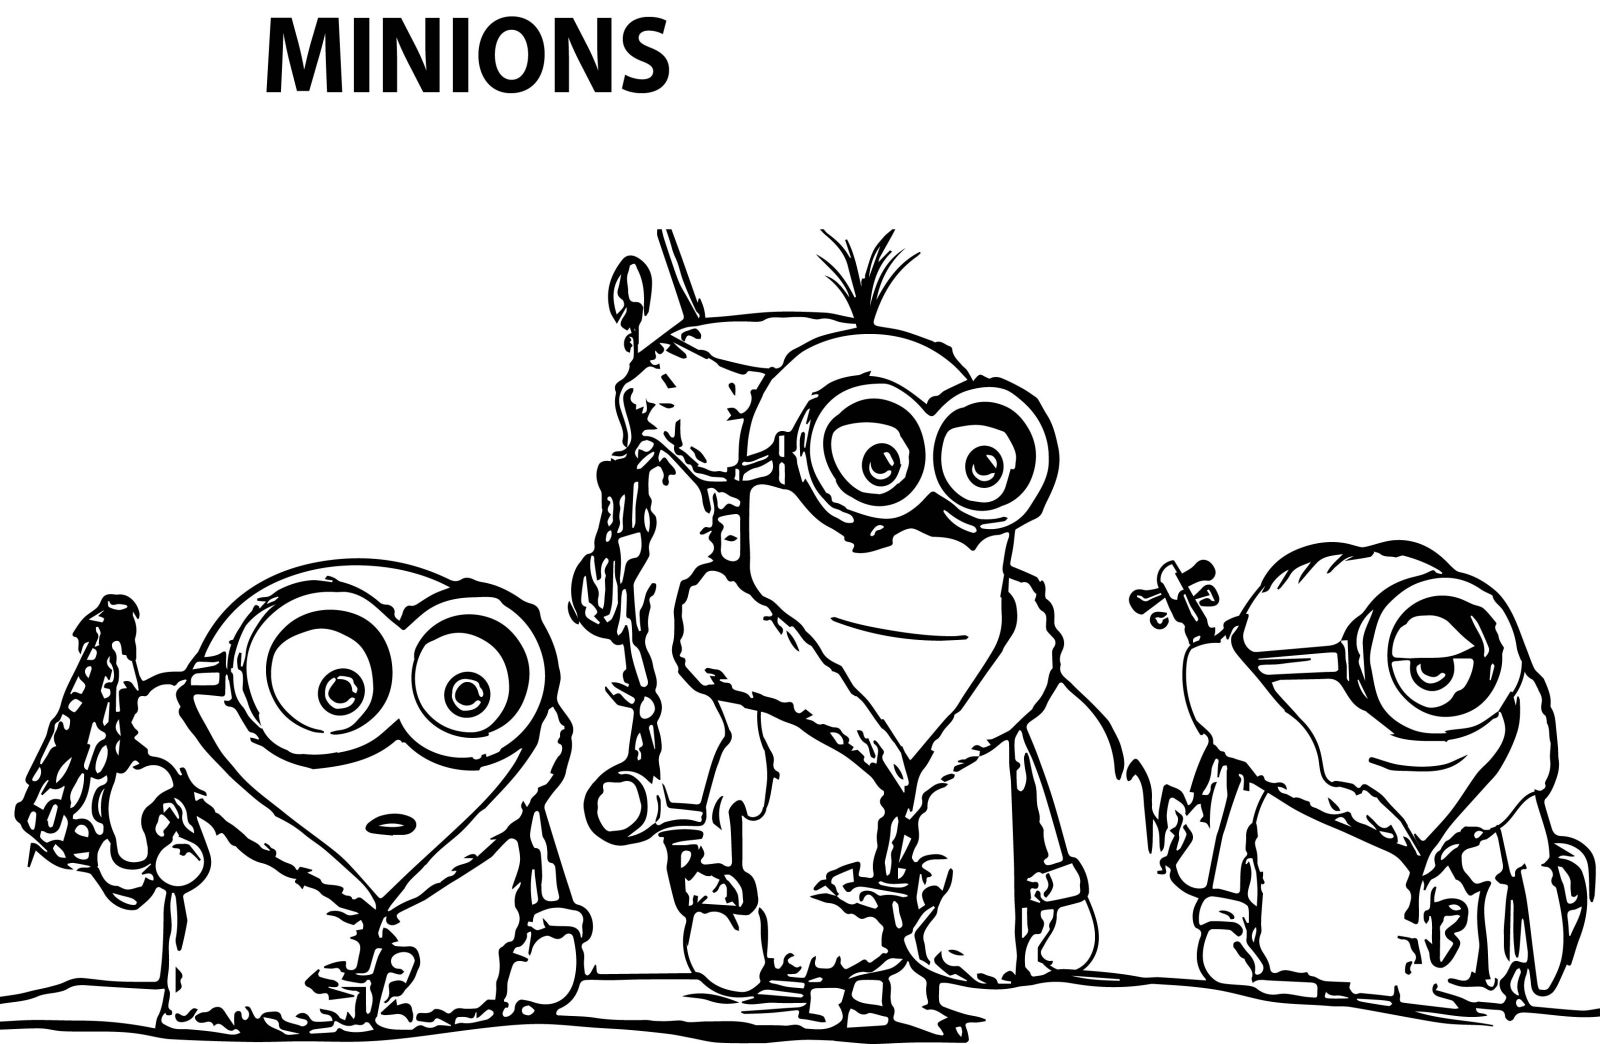 Printable coloring pages minions - Printable Coloring Pages Minions 53